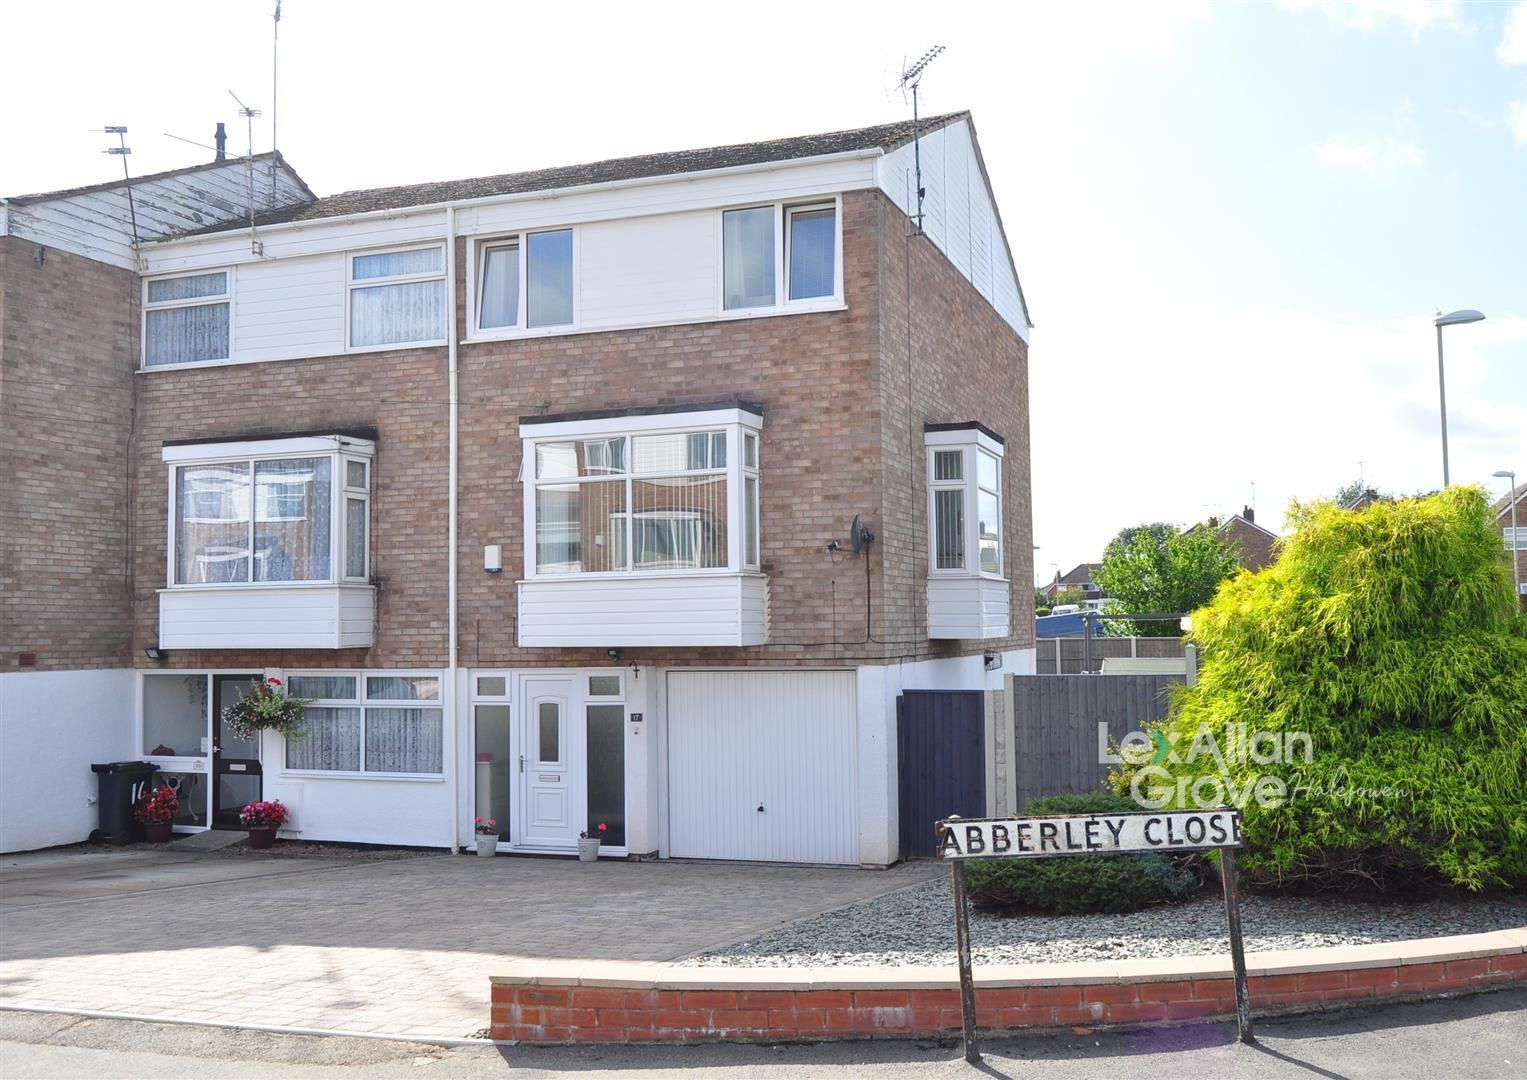 4 bed end-of-terrace for sale, B63